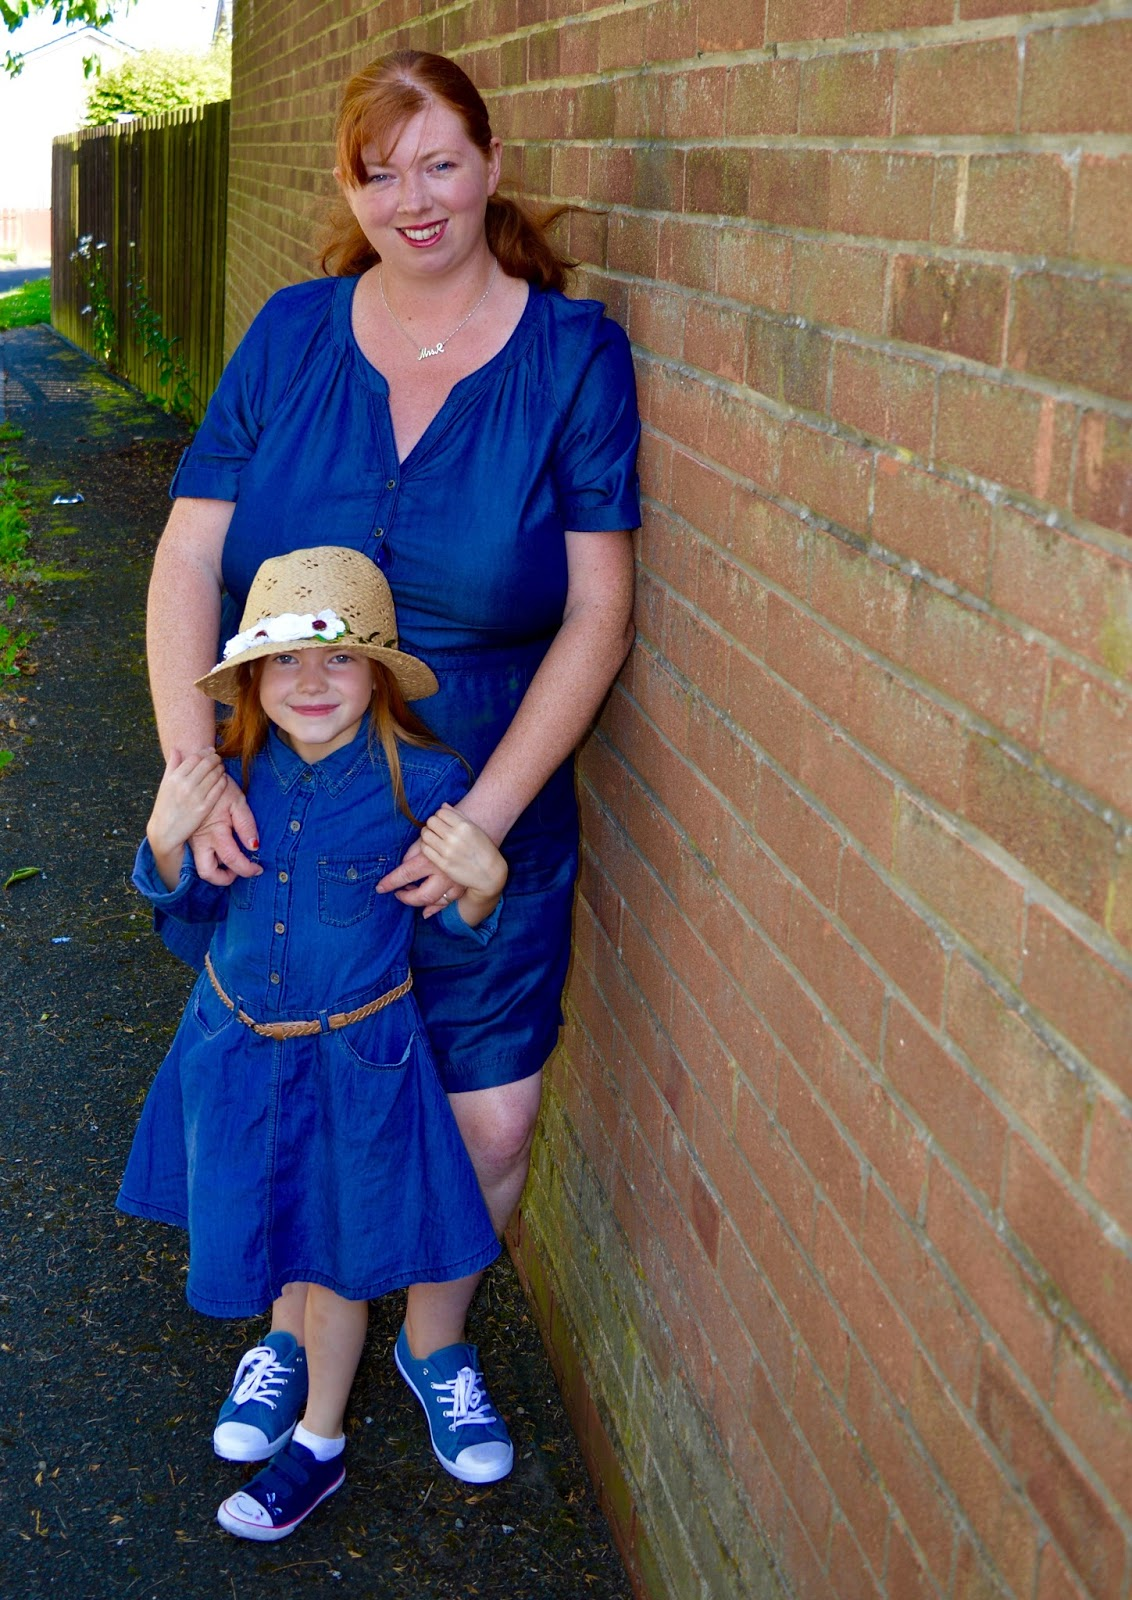 Matching mum & daughter Denim dress outfits from George at Asda as part of #GeorgeMiniMe